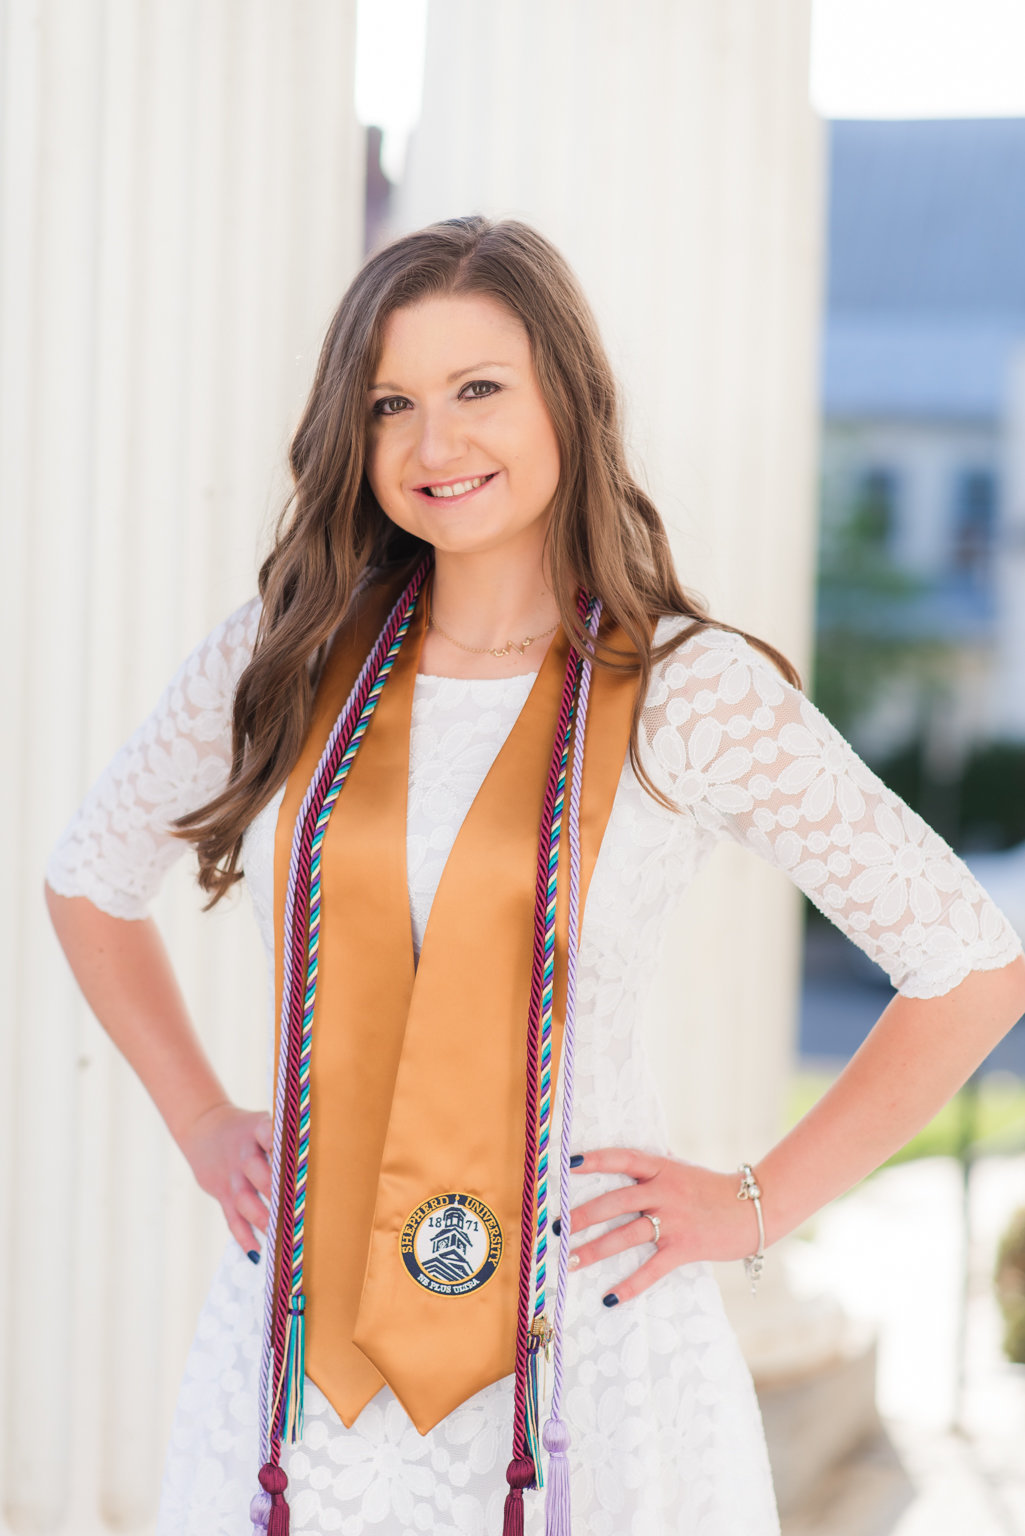 College Graduate_Nursing School_Shepherd University_Northern Virginia Photographer-211